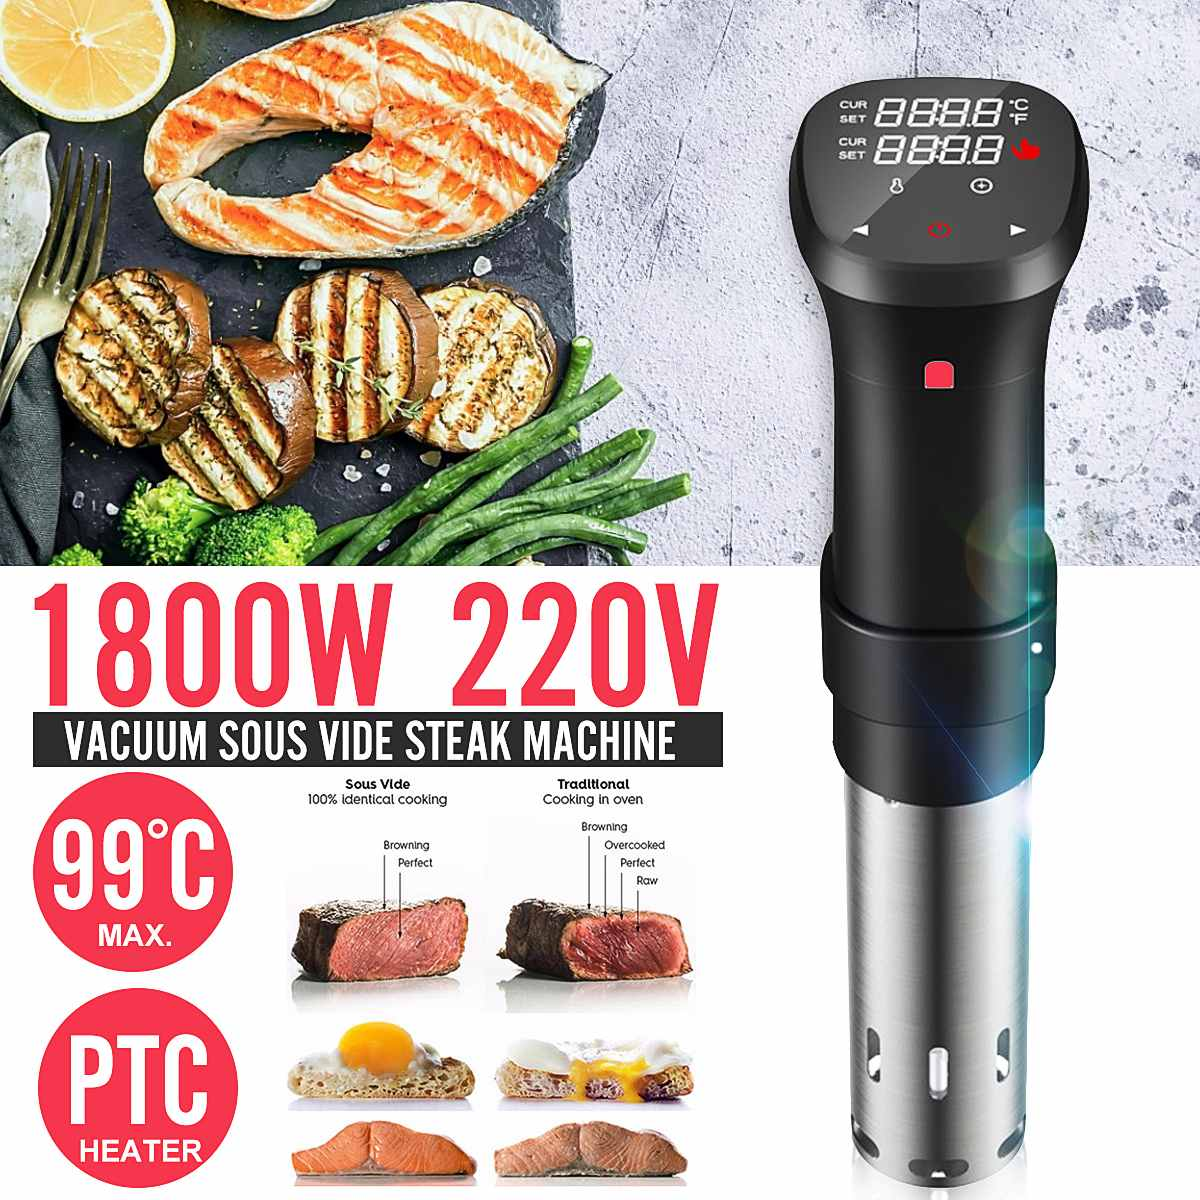 1800W Digital Sous Vide Culinary Cooker Accurate Immersion Circulator Timer 220V